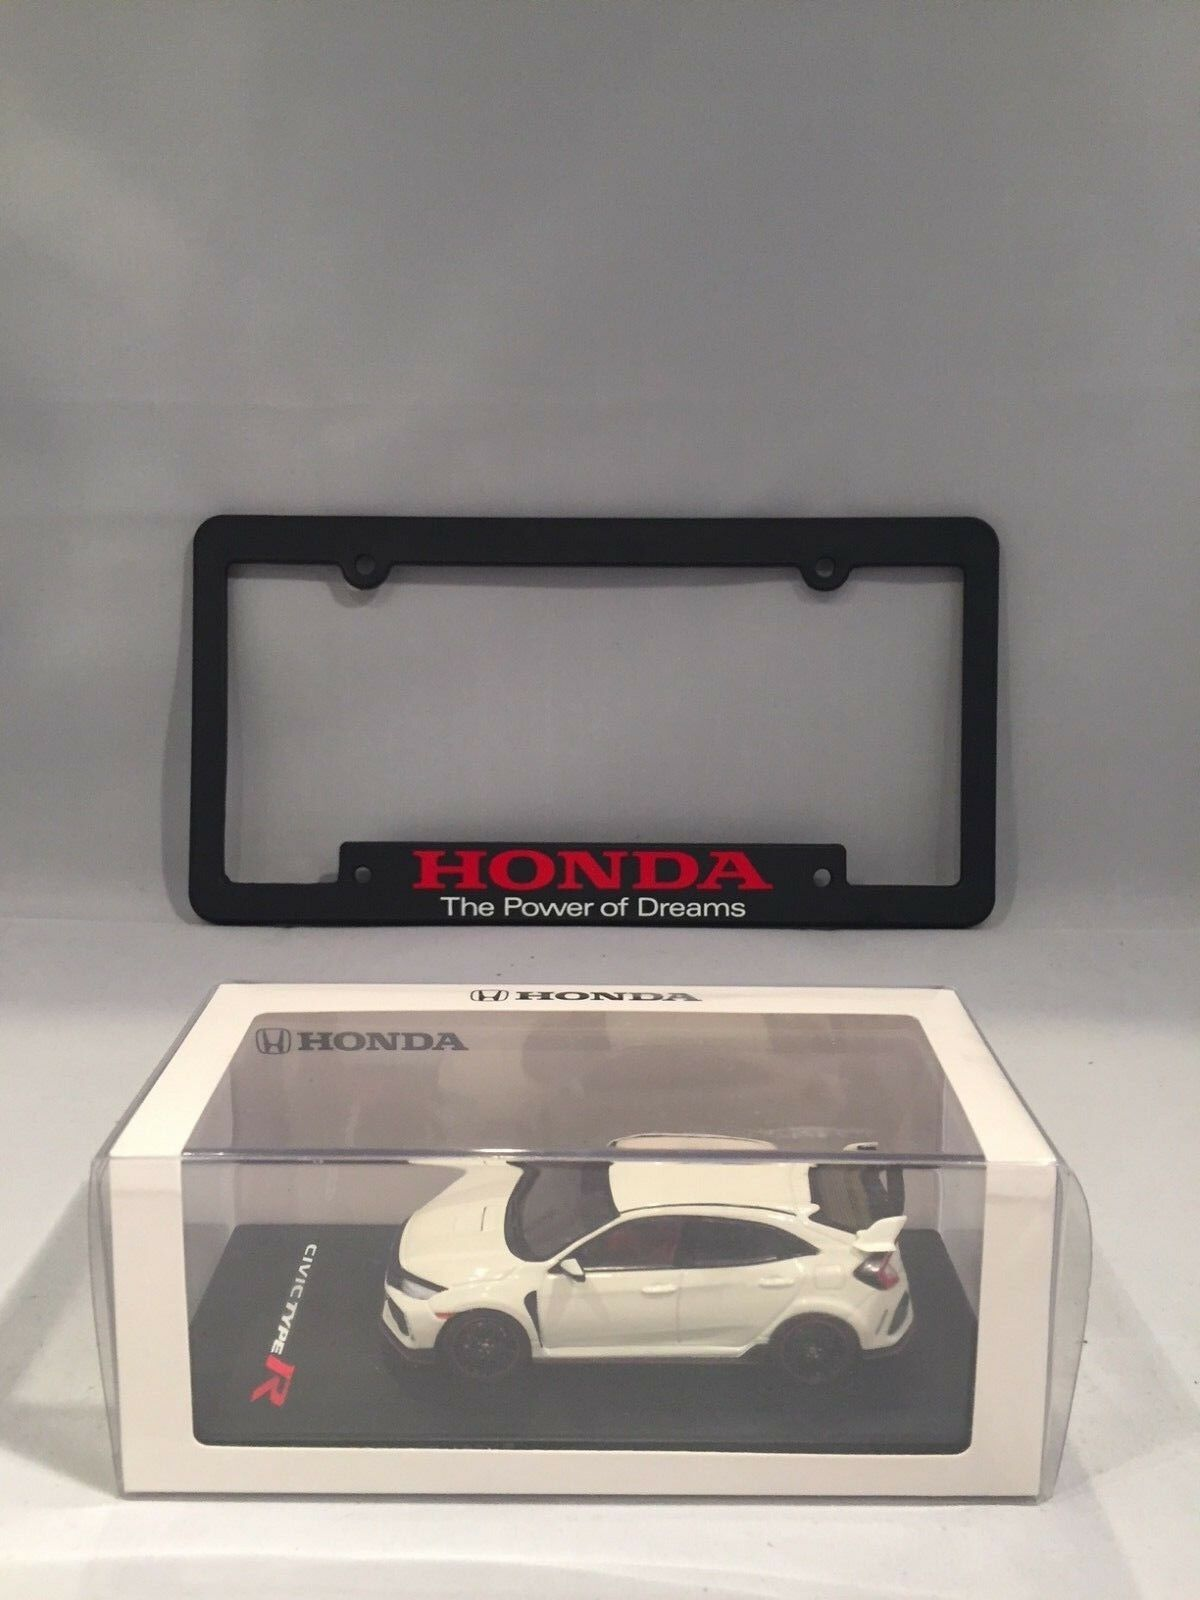 Honda Civic Type-R 1 43 Diecast With Power Of Dreams License Plate Frame Combo